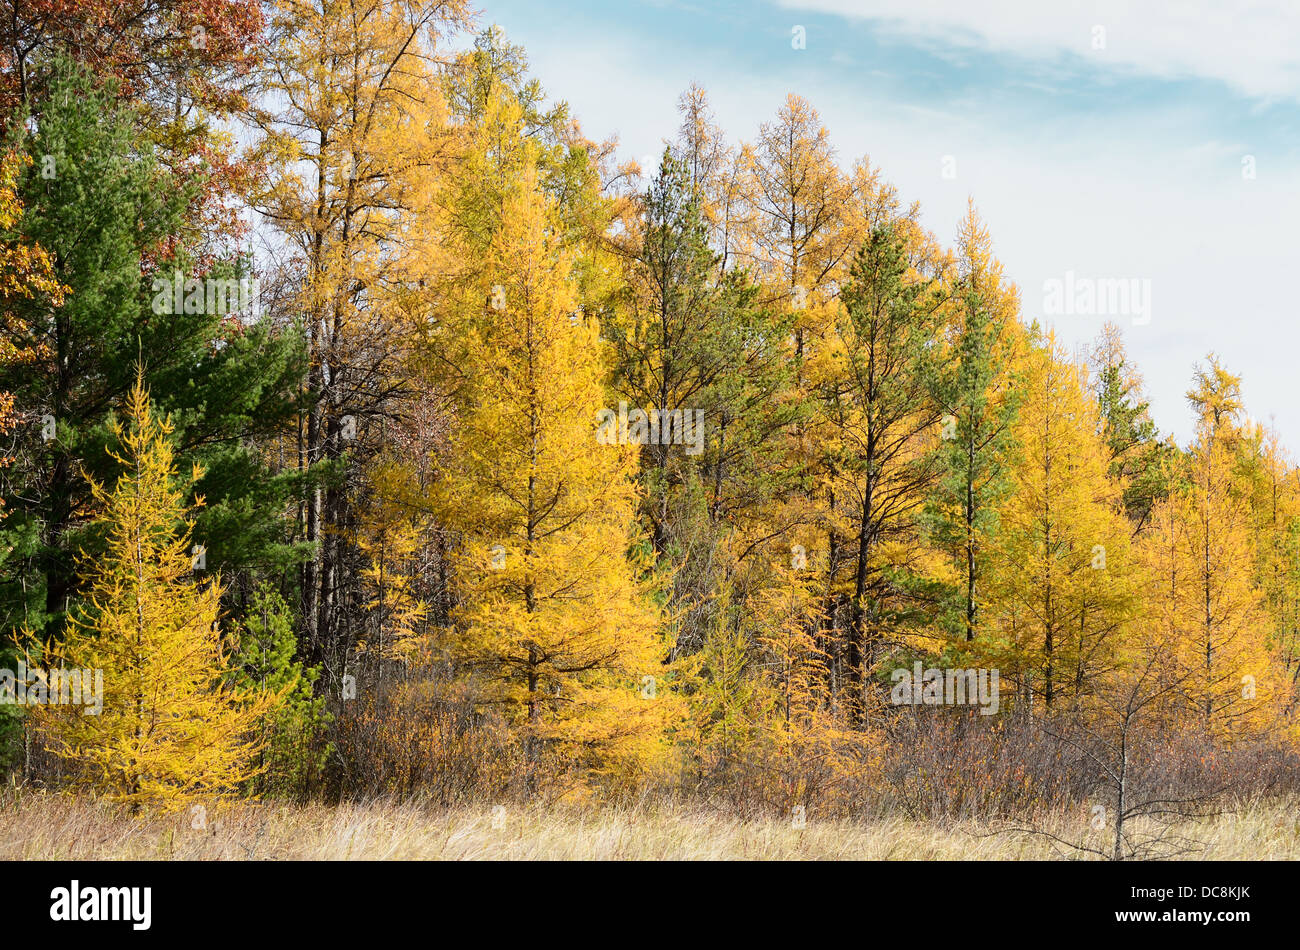 Tamaracks (Larix laricina) - also known as the American Larch in the Fall, USA - Stock Image